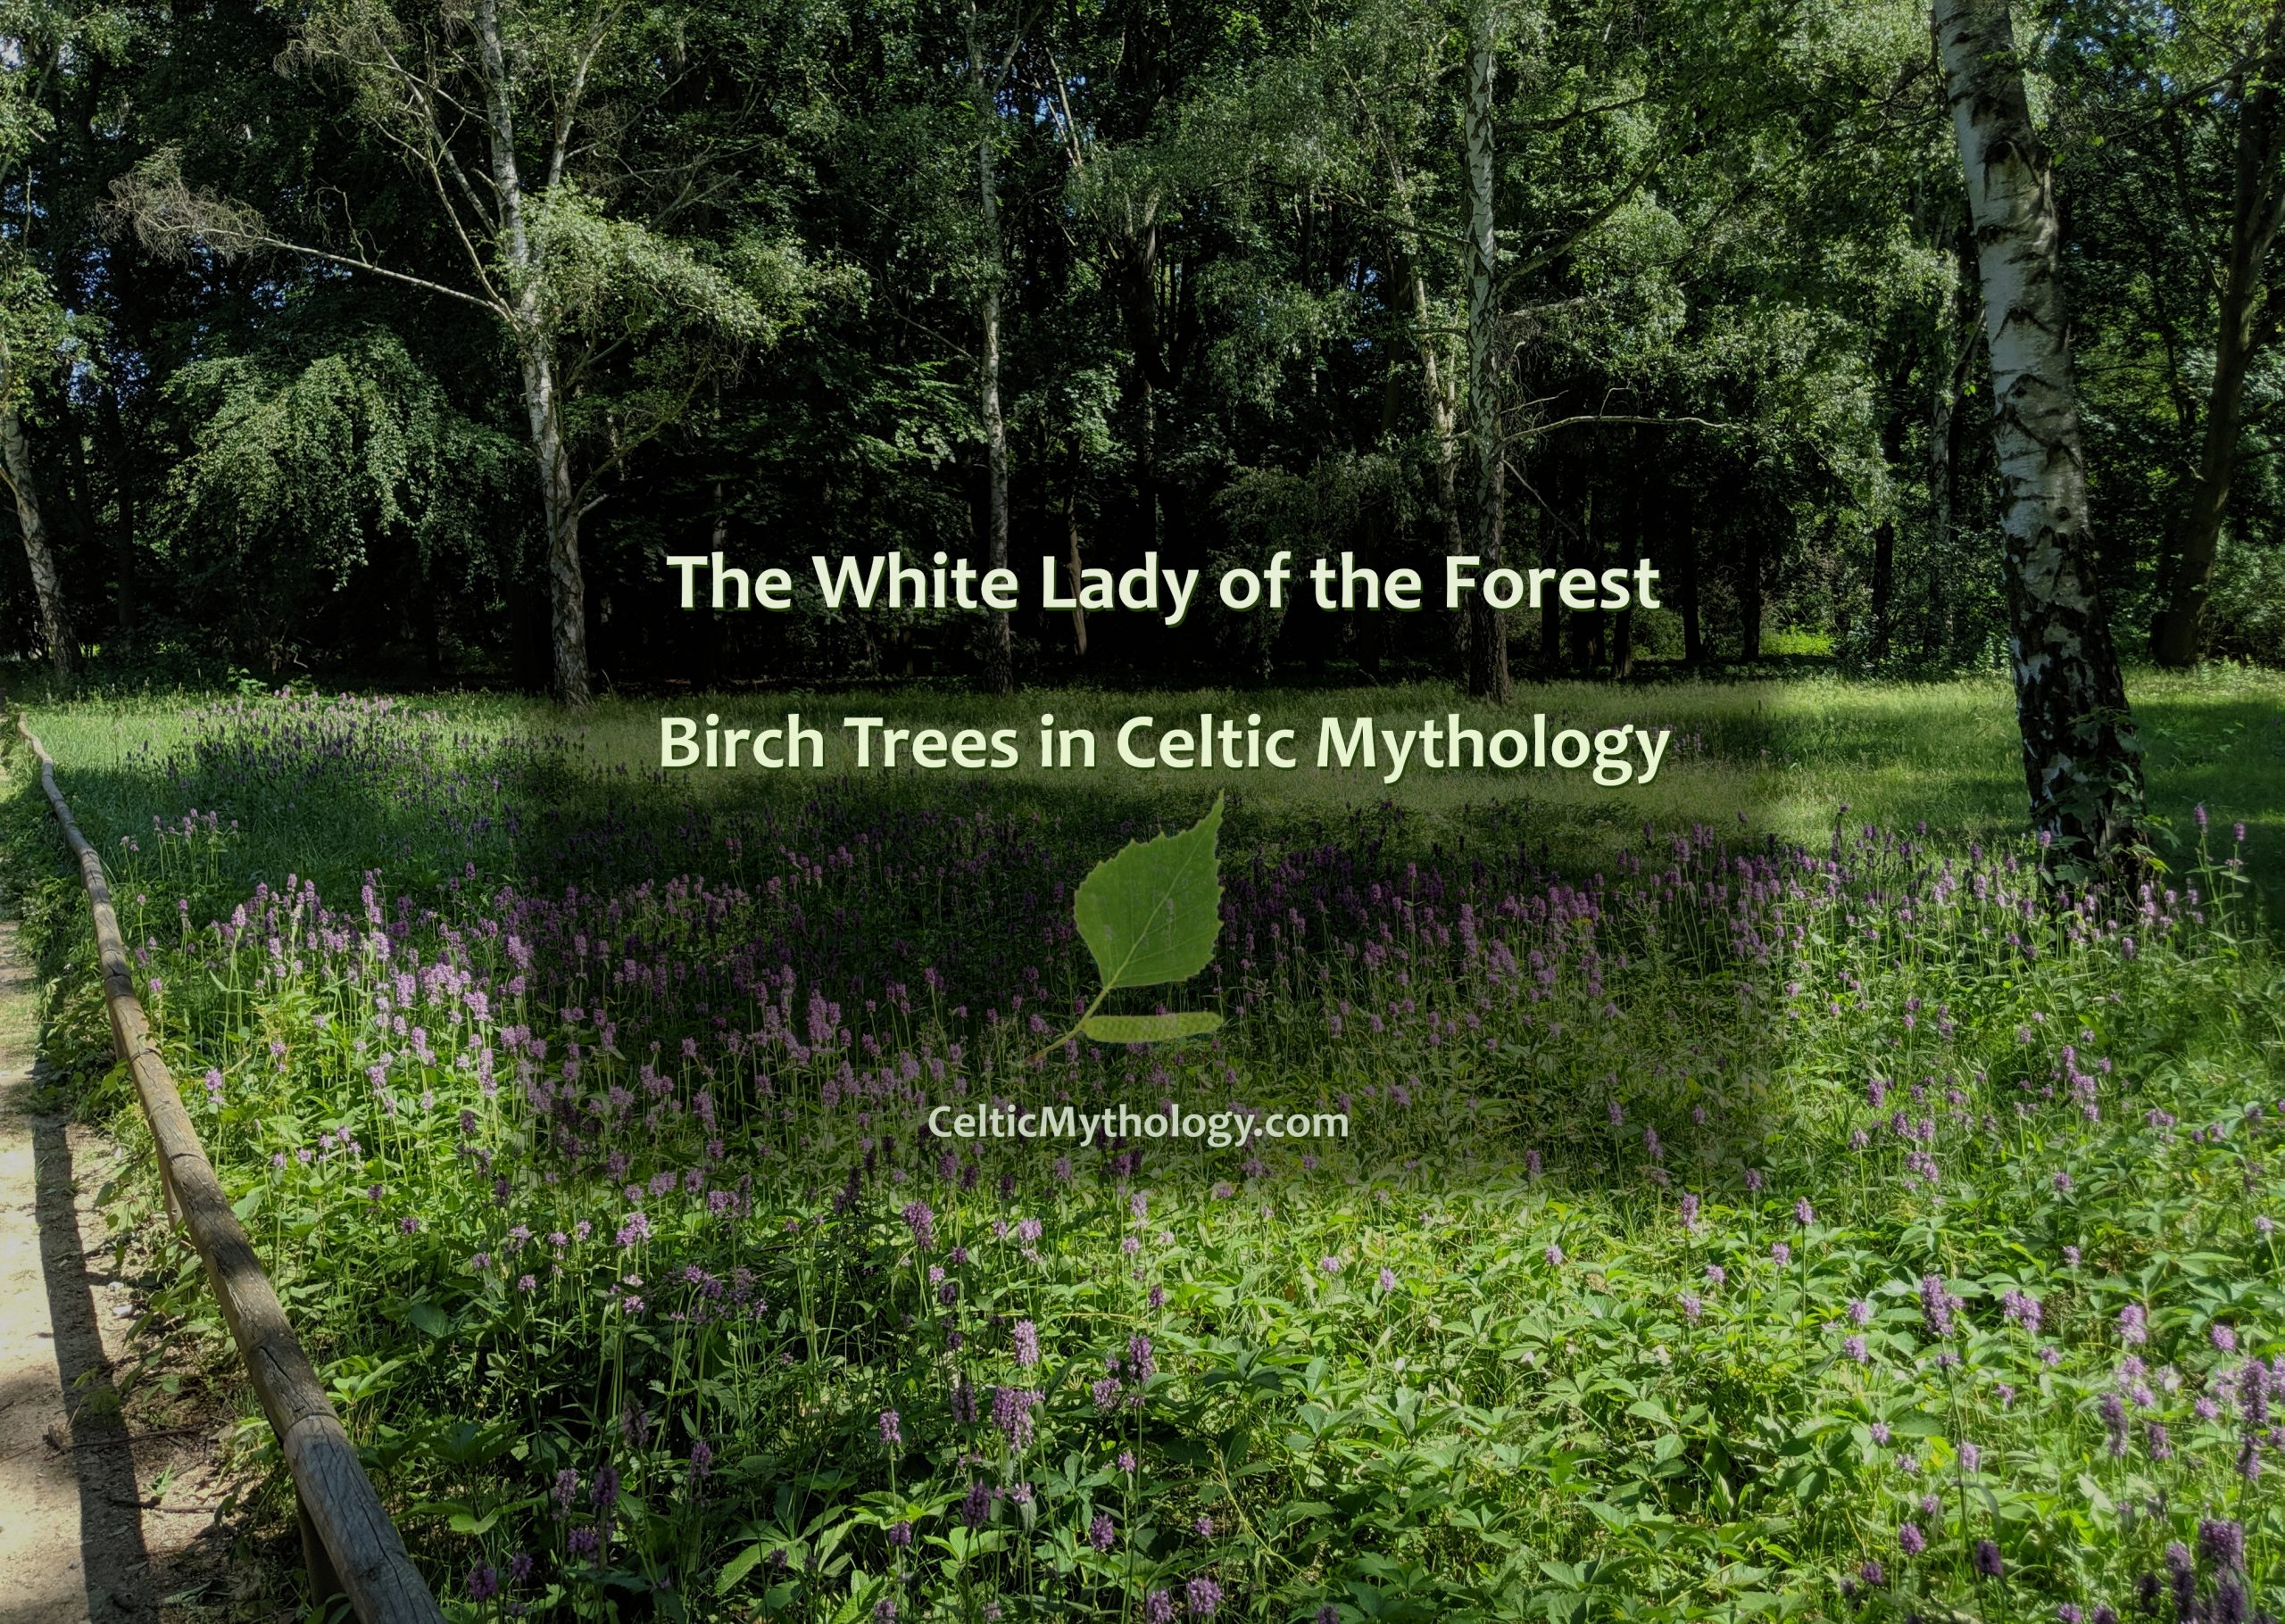 Birch Trees in Celtic Mythology